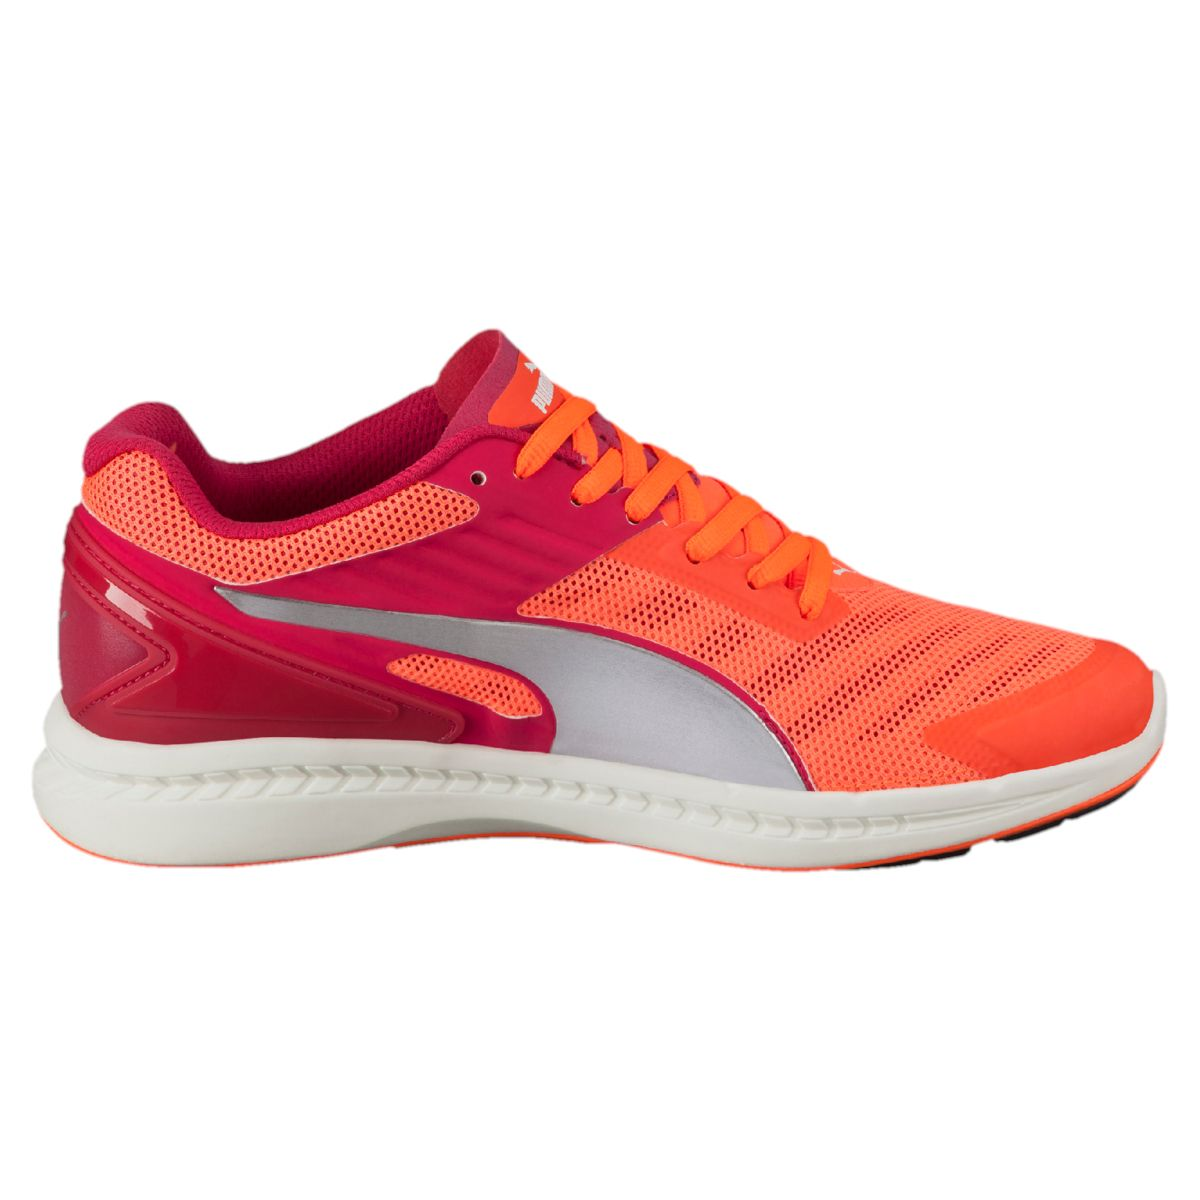 Puma Ignite Mesh Running Shoes Review